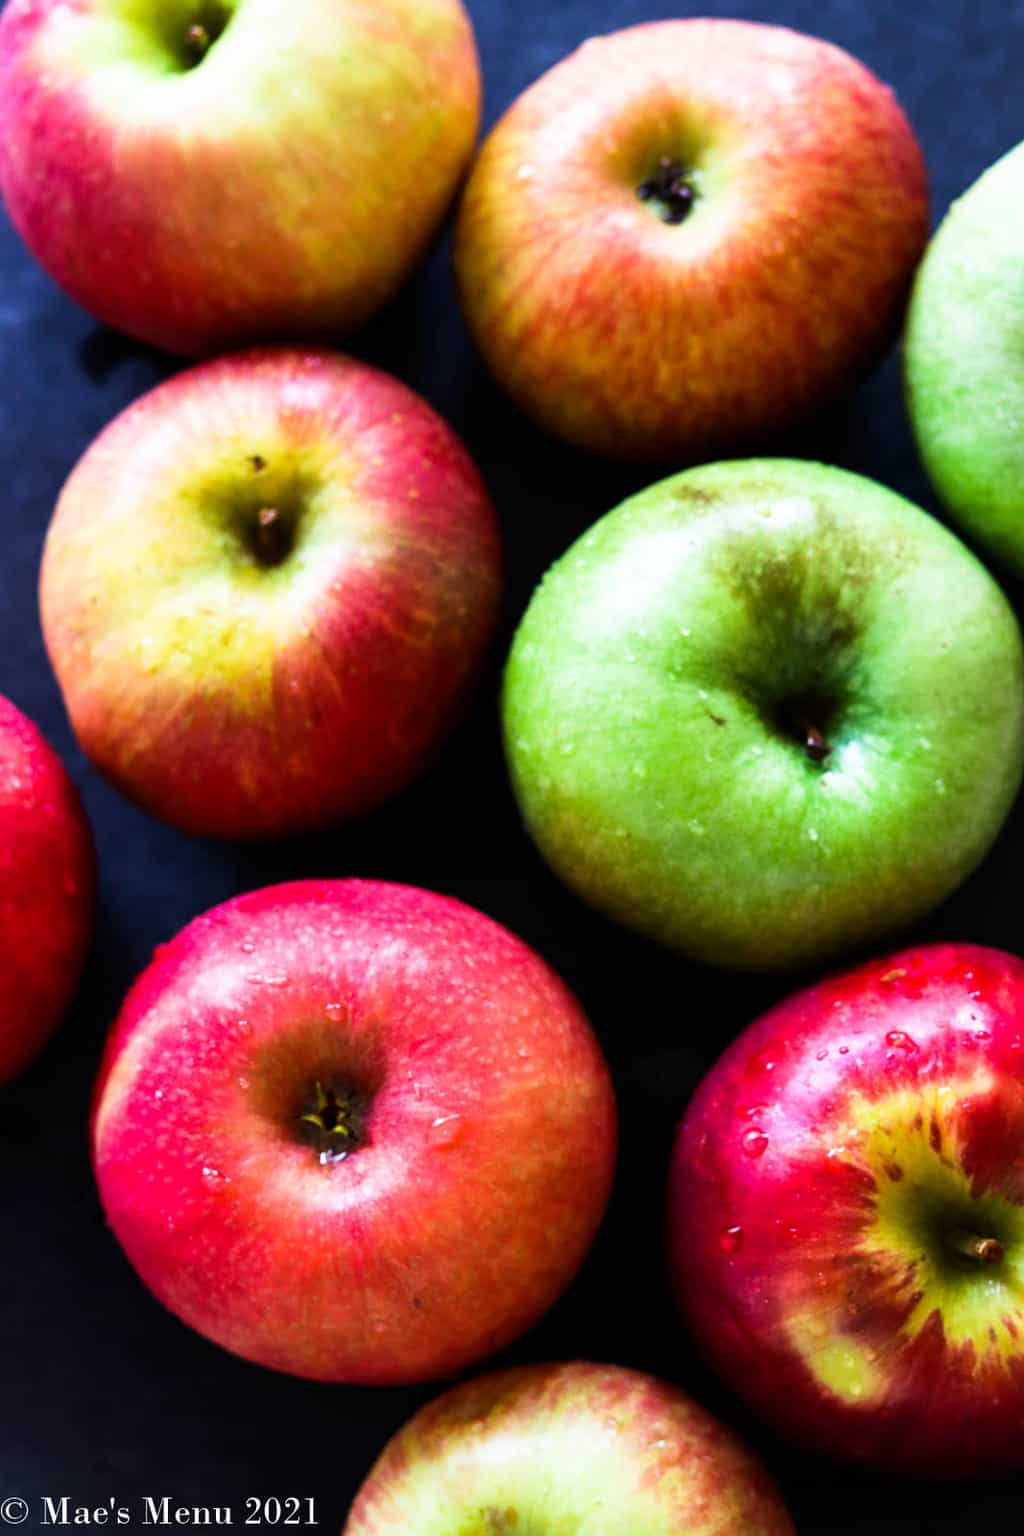 An up-close overhead shot of apples on a black background